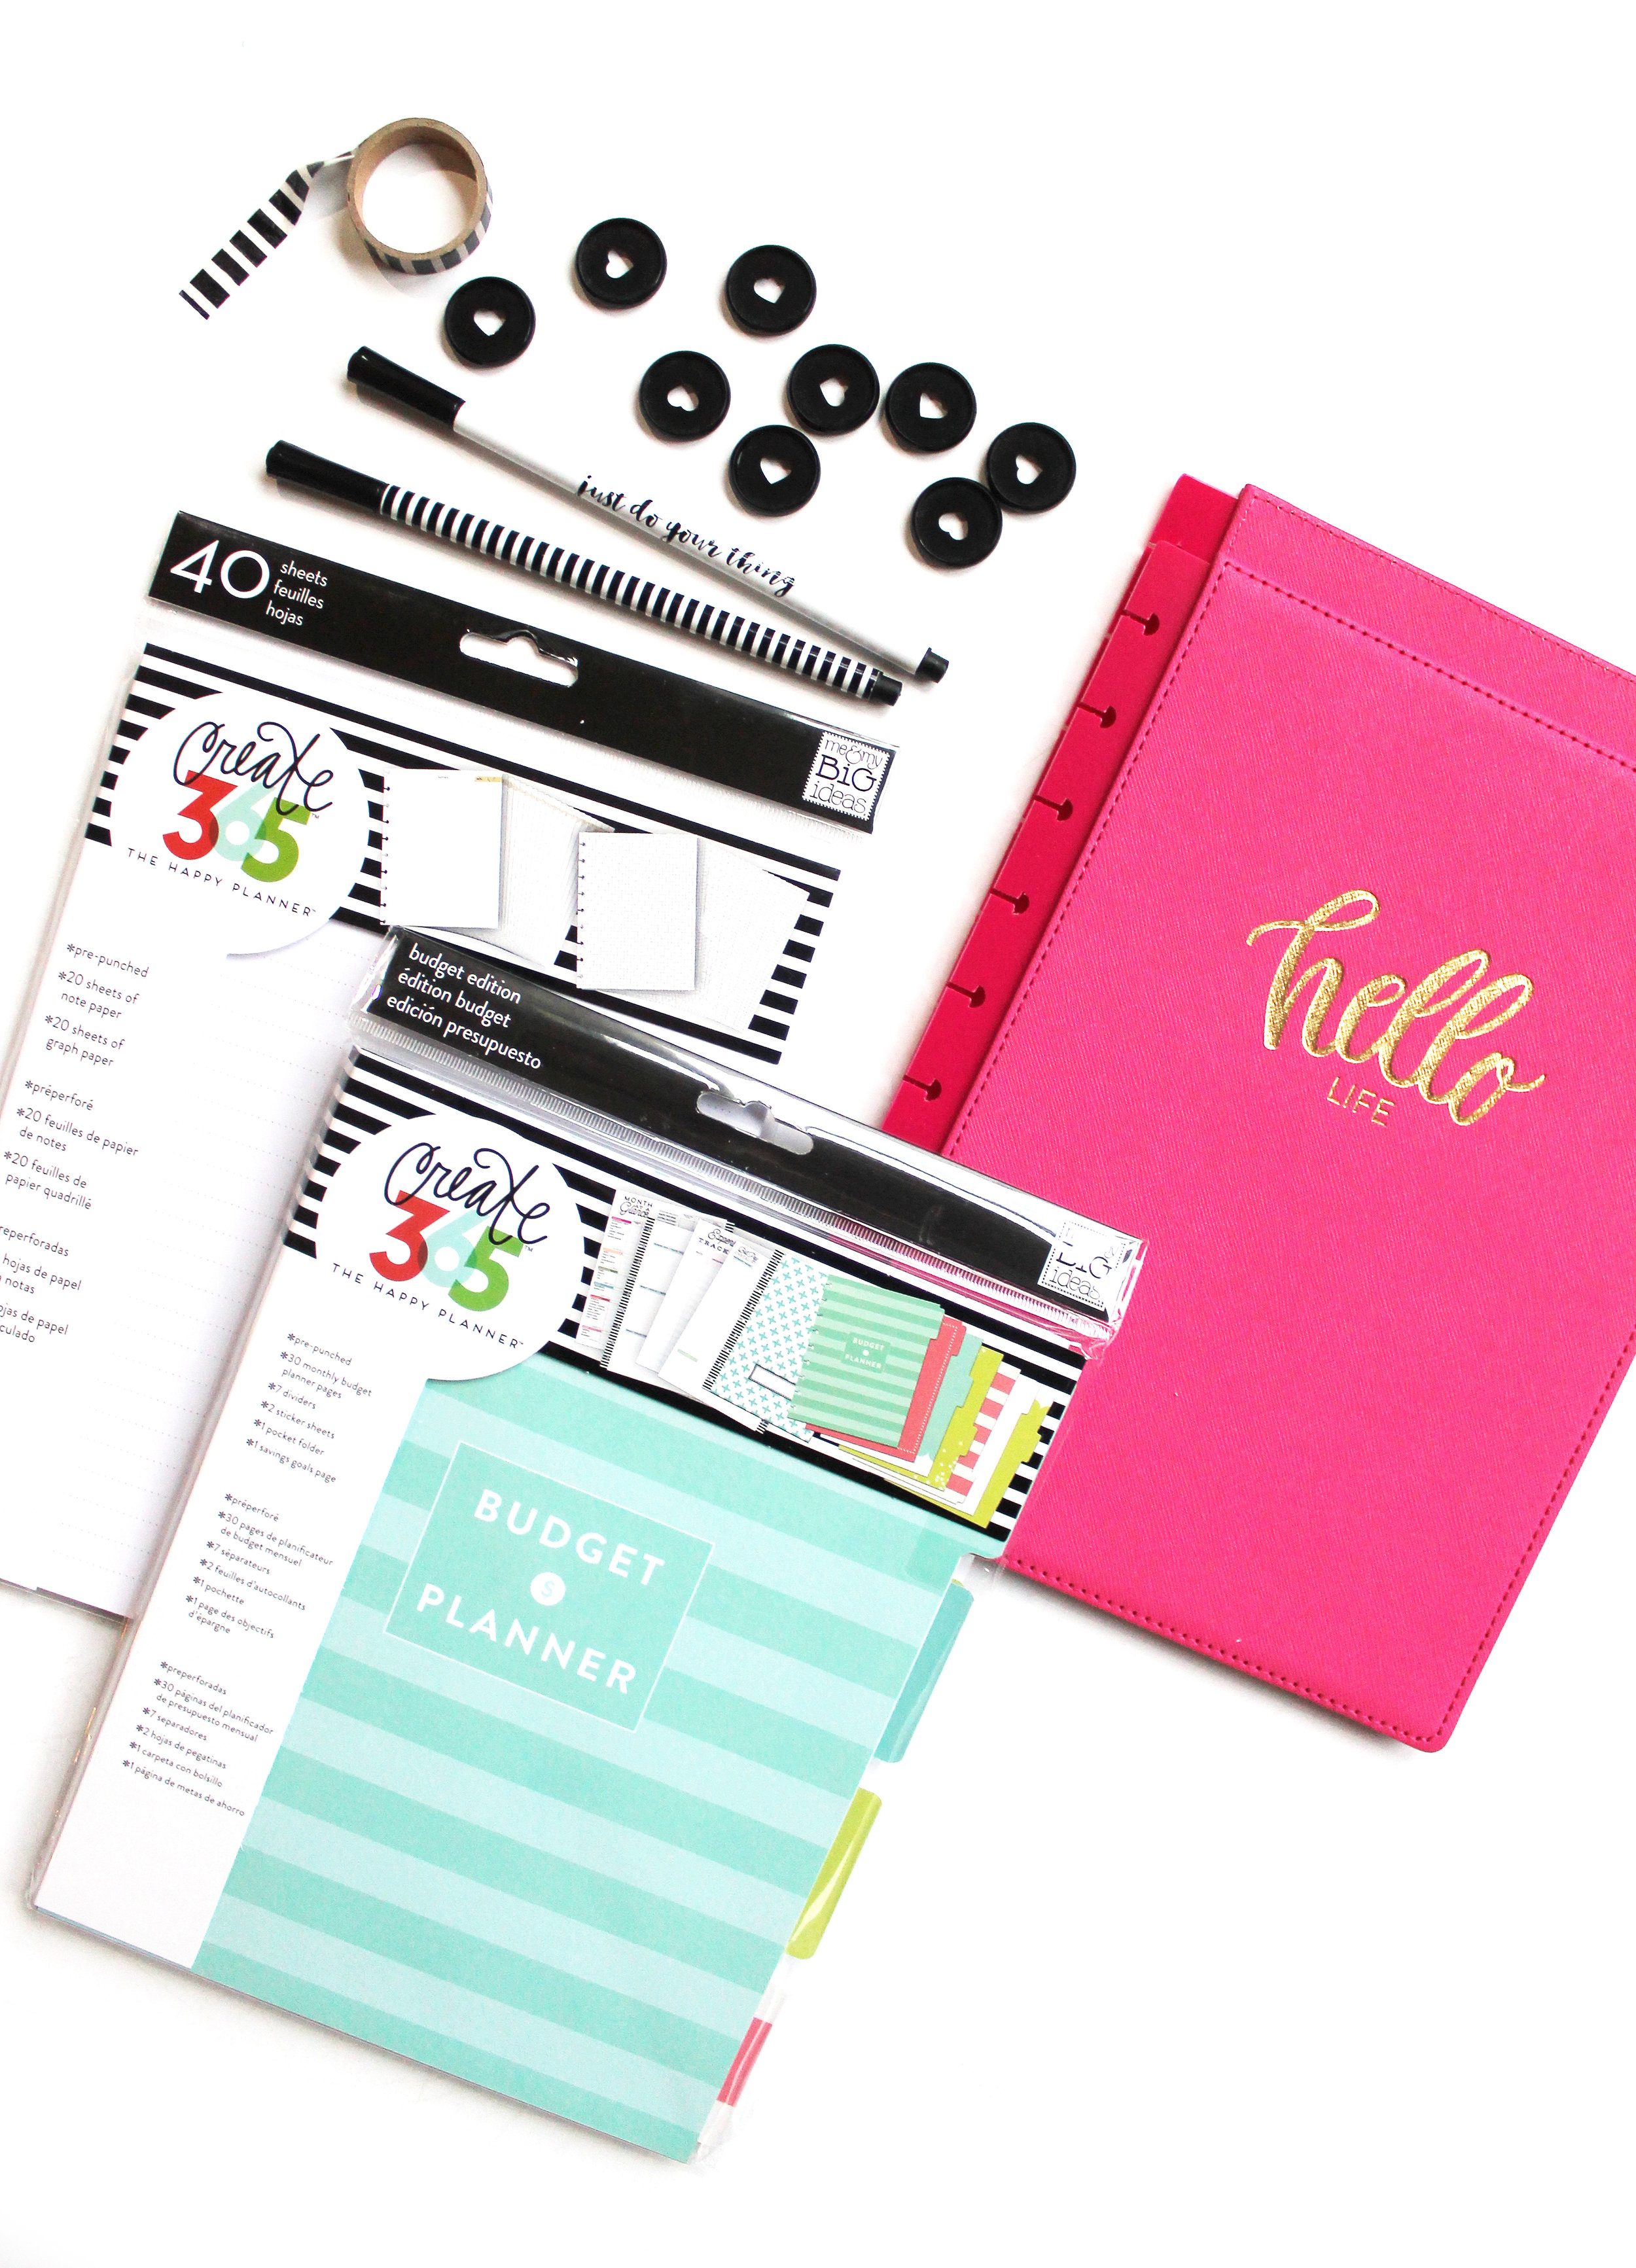 DIY 'Adulting' Notebook using Happy Planner® accessories & the Budget Extension Pack by mambi Design Team member Katie Barton | me & my BIG ideas